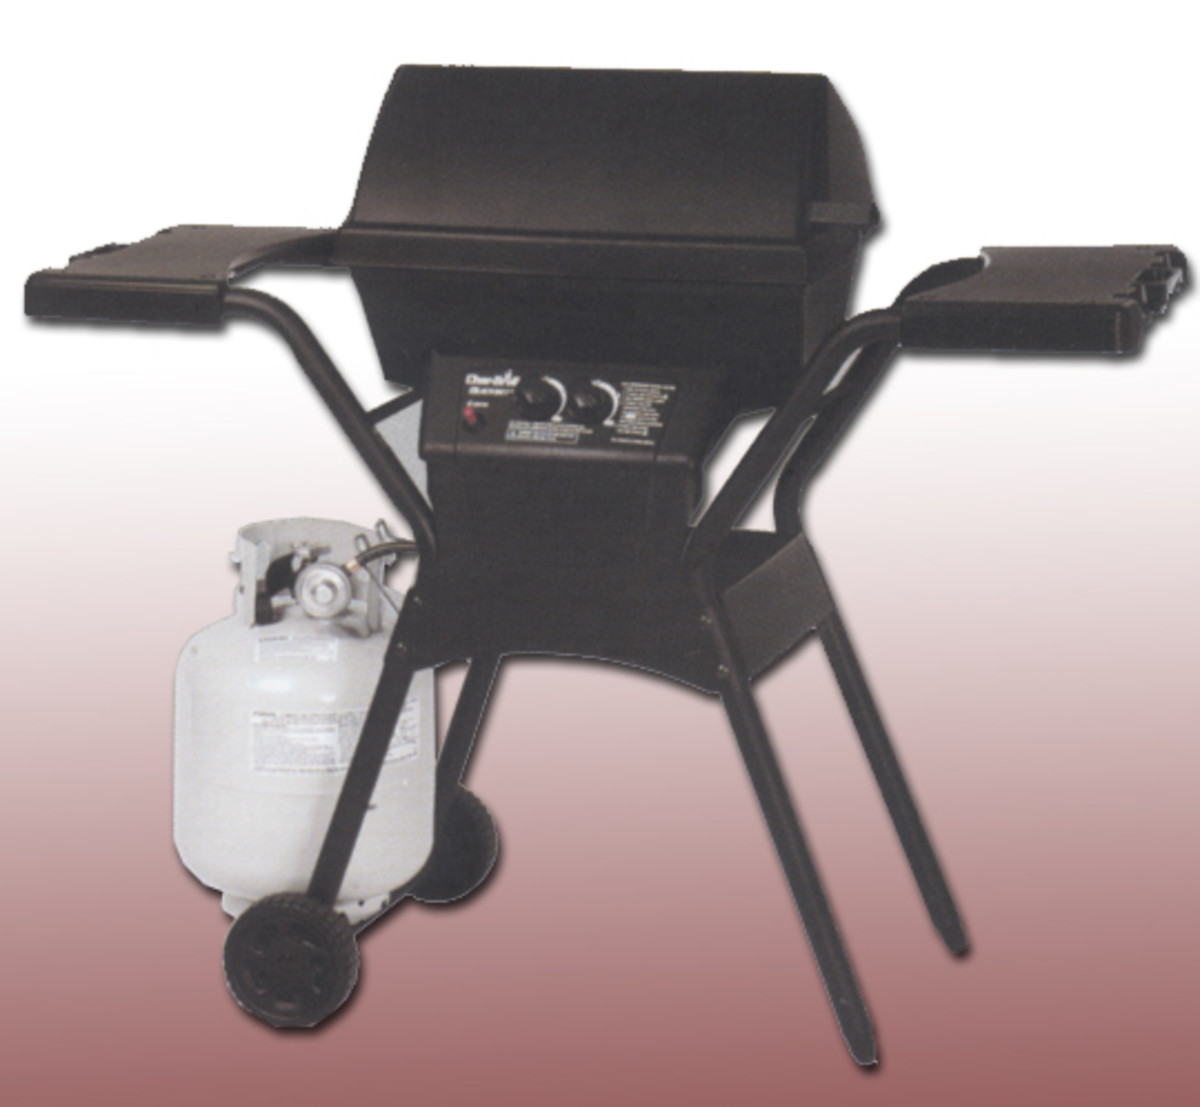 Char-broil Quickset model 4635315 uses evenflame system with vaporiser bar for good heat distribution.  Mid-range grill is very inexpensive.